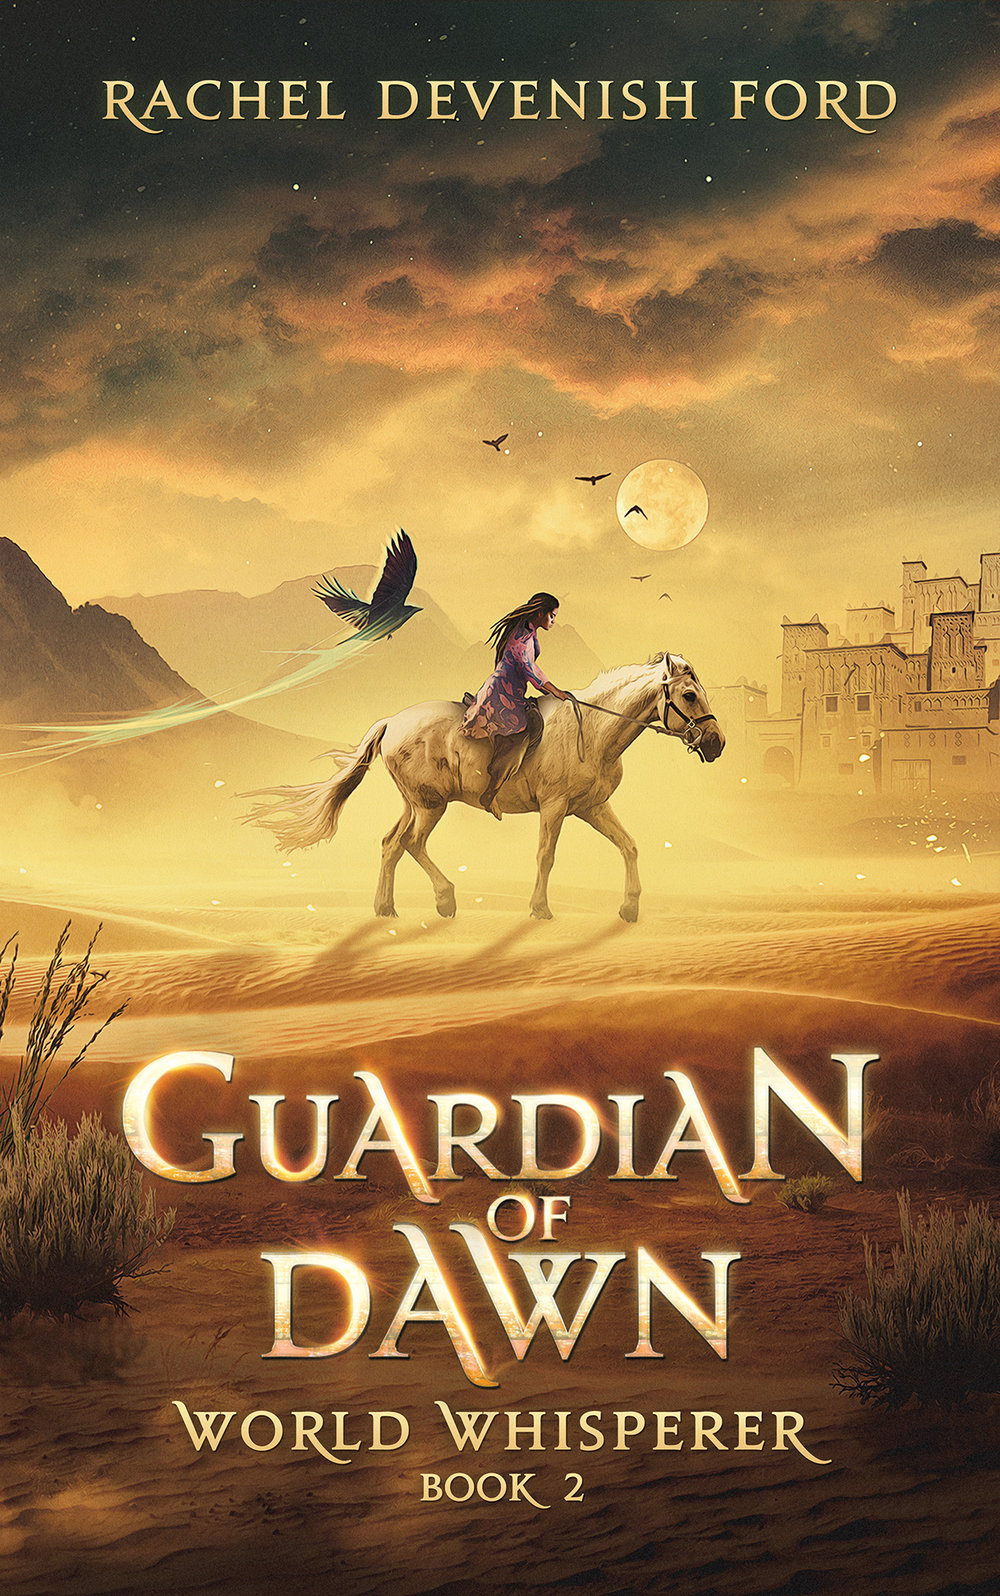 Guardian of Dawn - Ebook Small.jpg